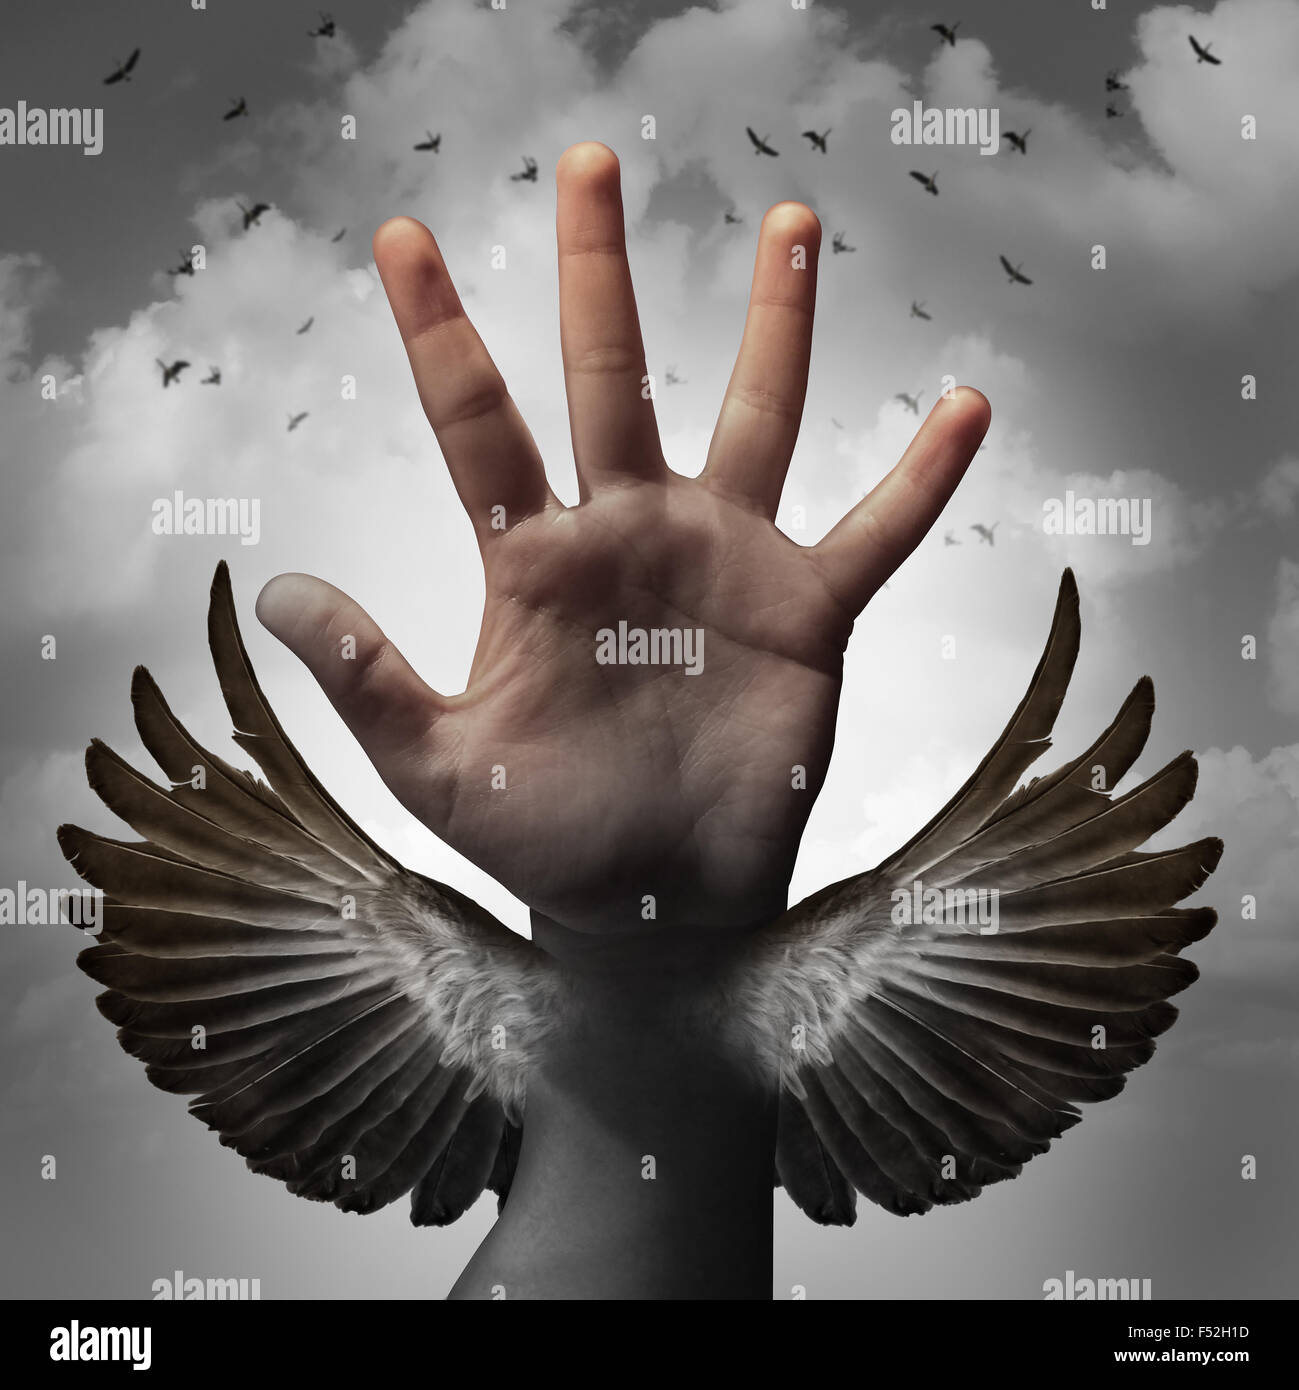 Build self confidence concept and believing in inner potential as a human hand transforming into a bird wing as - Stock Image